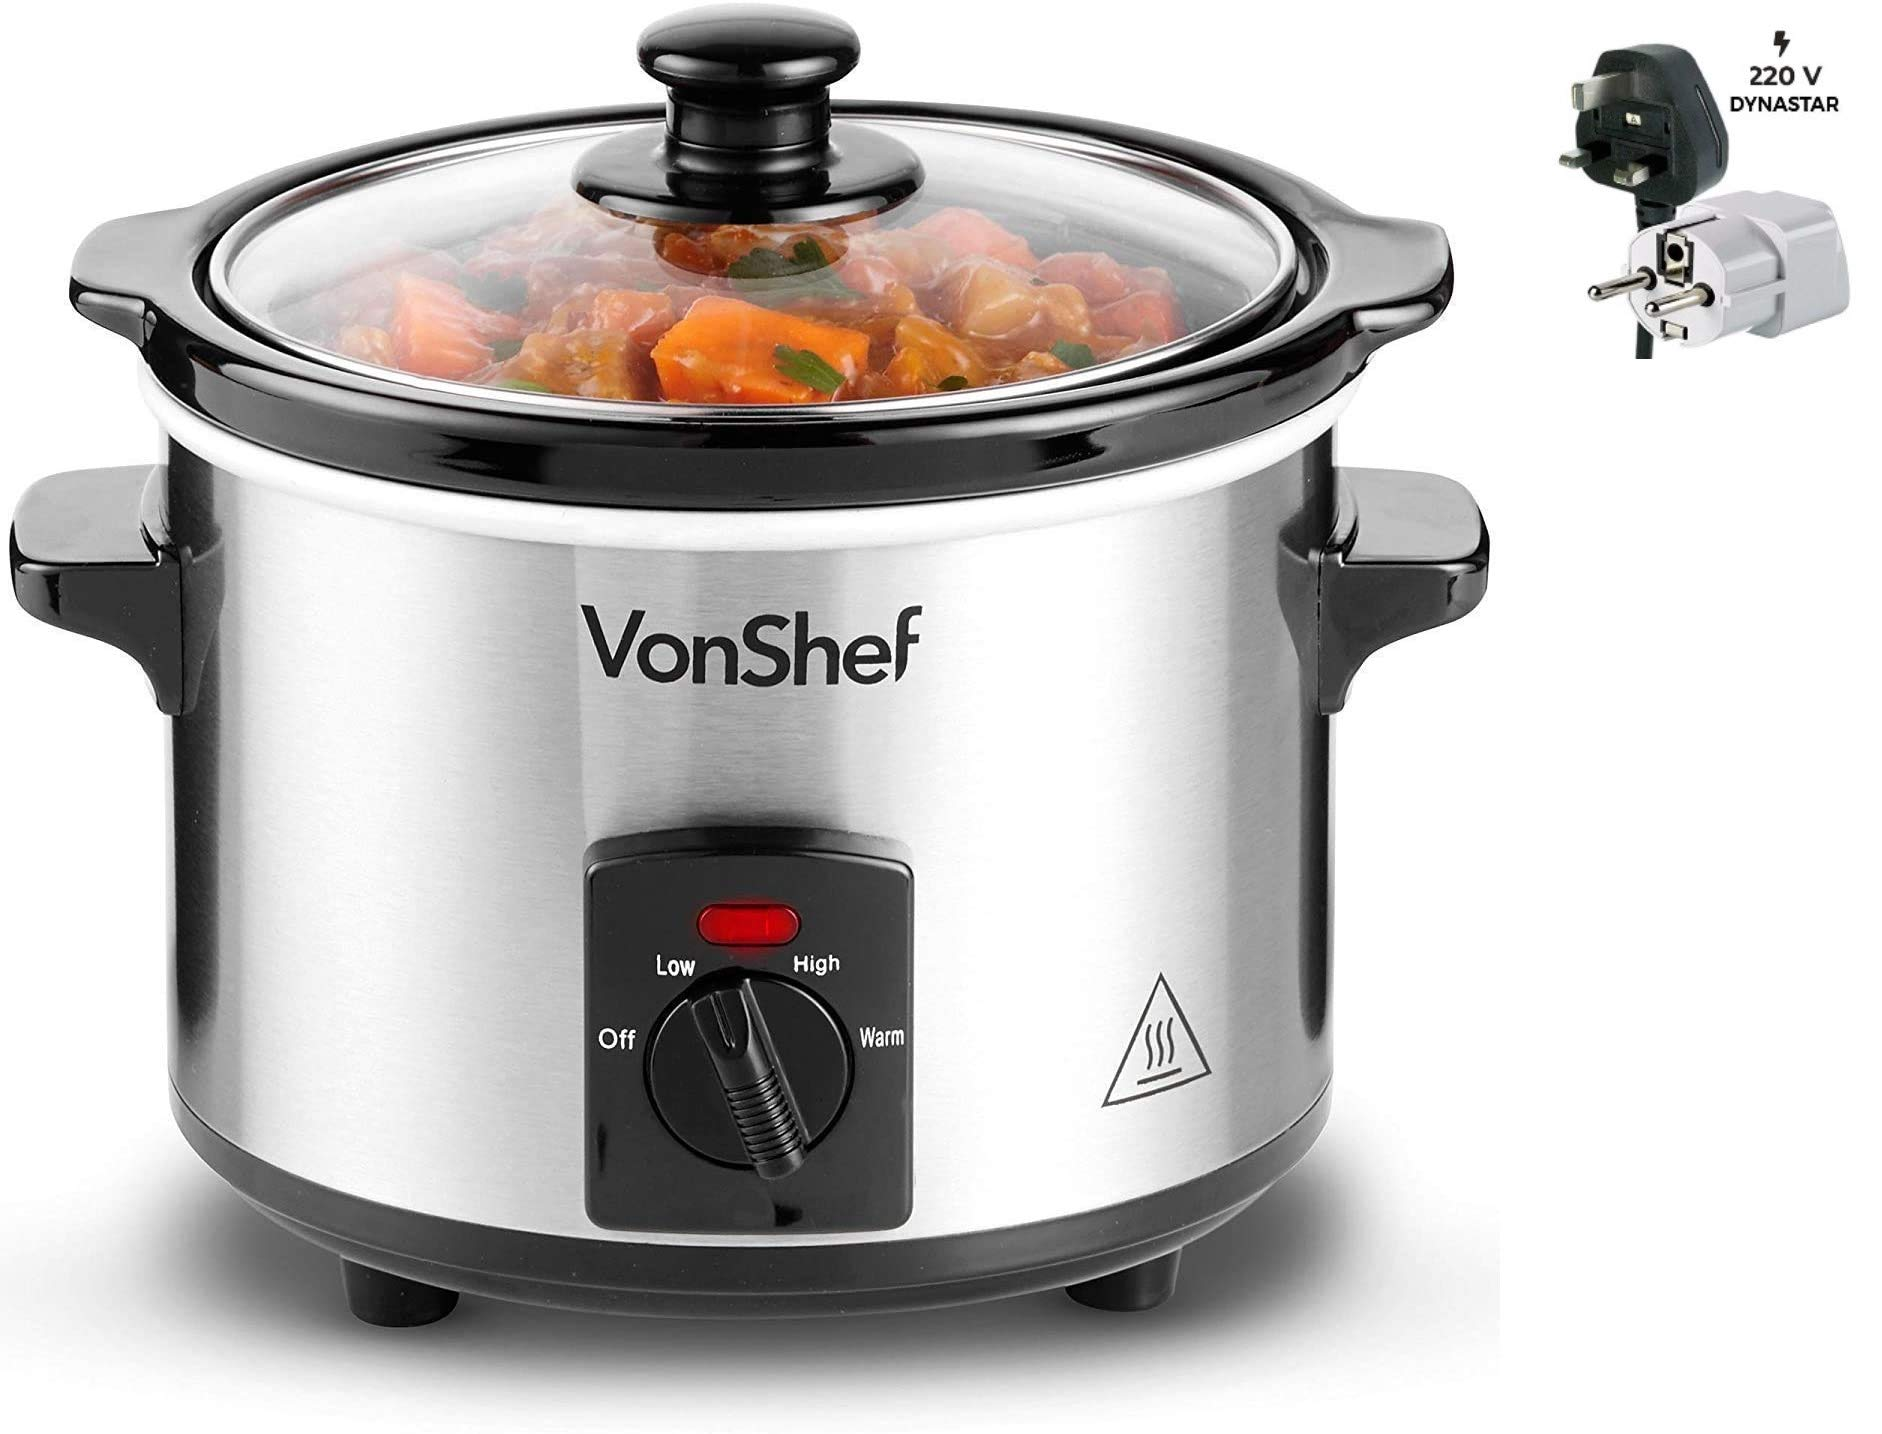 Vonshef 220 Volt 240 Volt Slow Cooker 1.5 L Stainless Steel with Removable Ceramic Dish, 3 Temperature Settings and Dynastar Plug adapters | 220v 240V (NOT FOR USA)